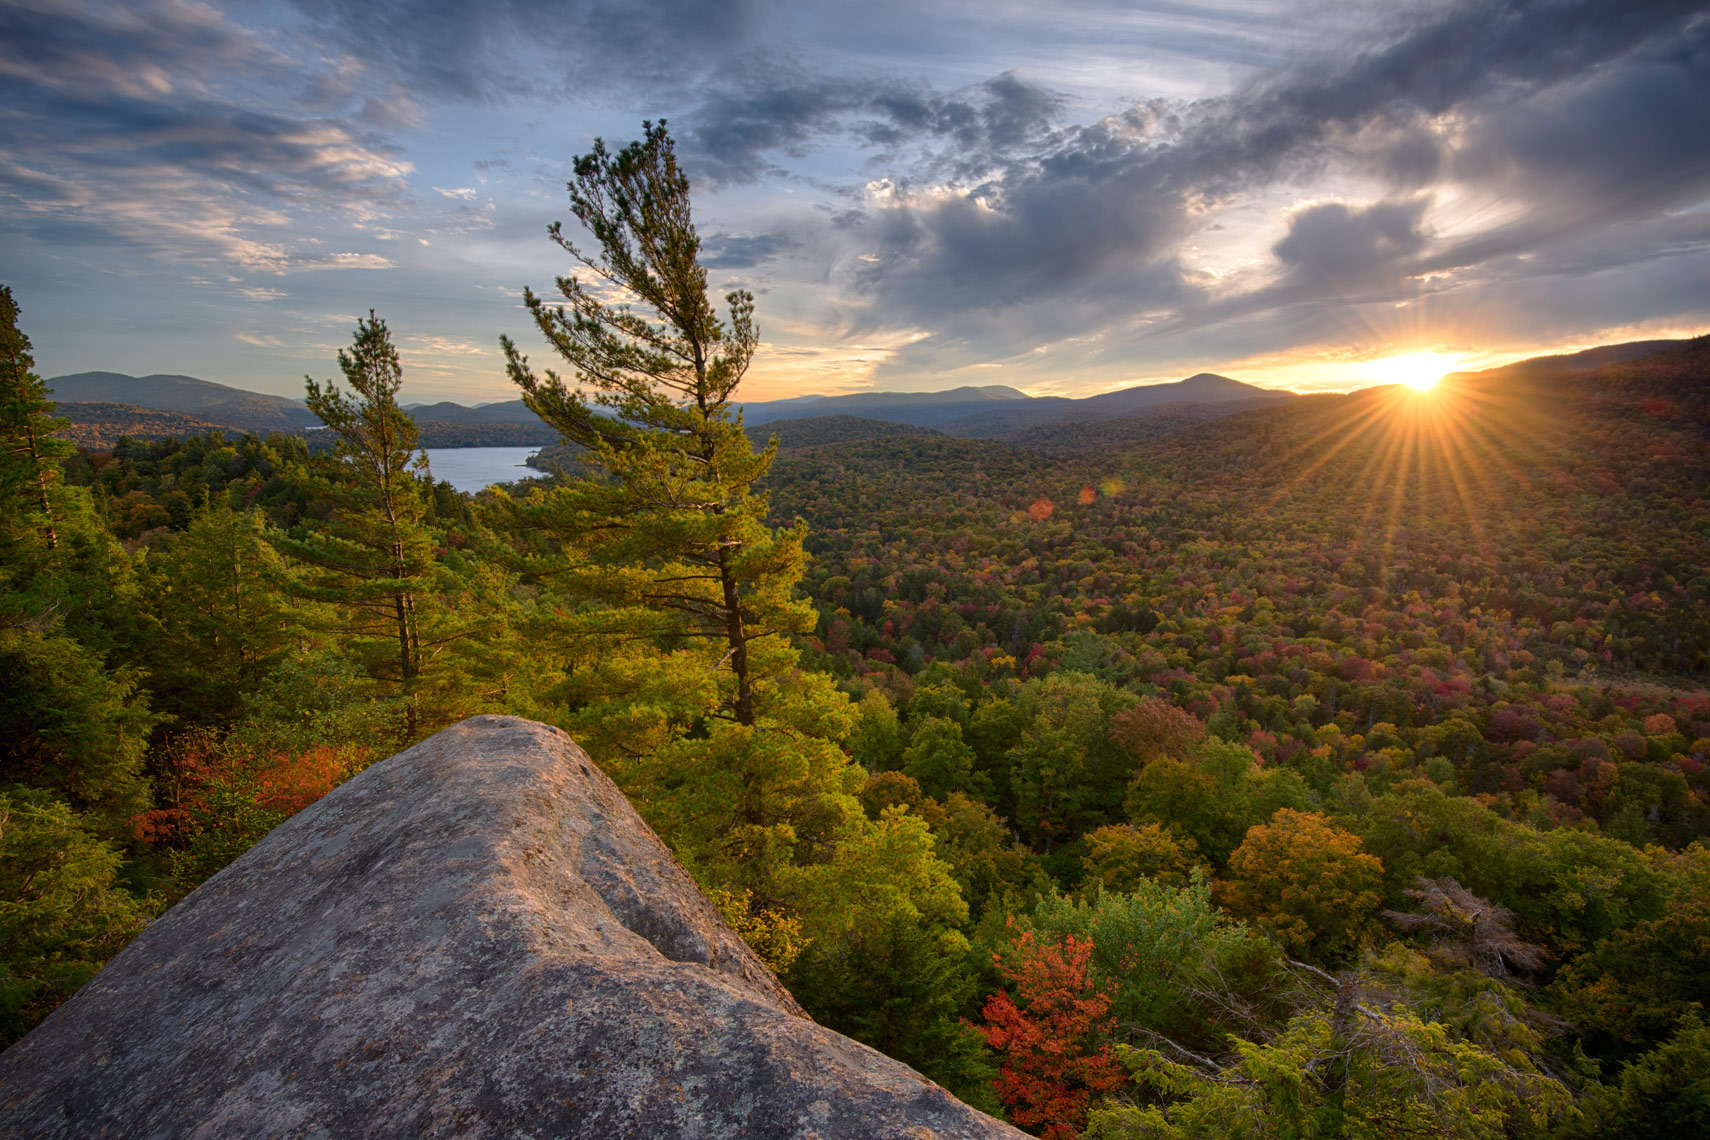 Watch Hill Sunset in Autumn, Adirondack Mountains, New York State